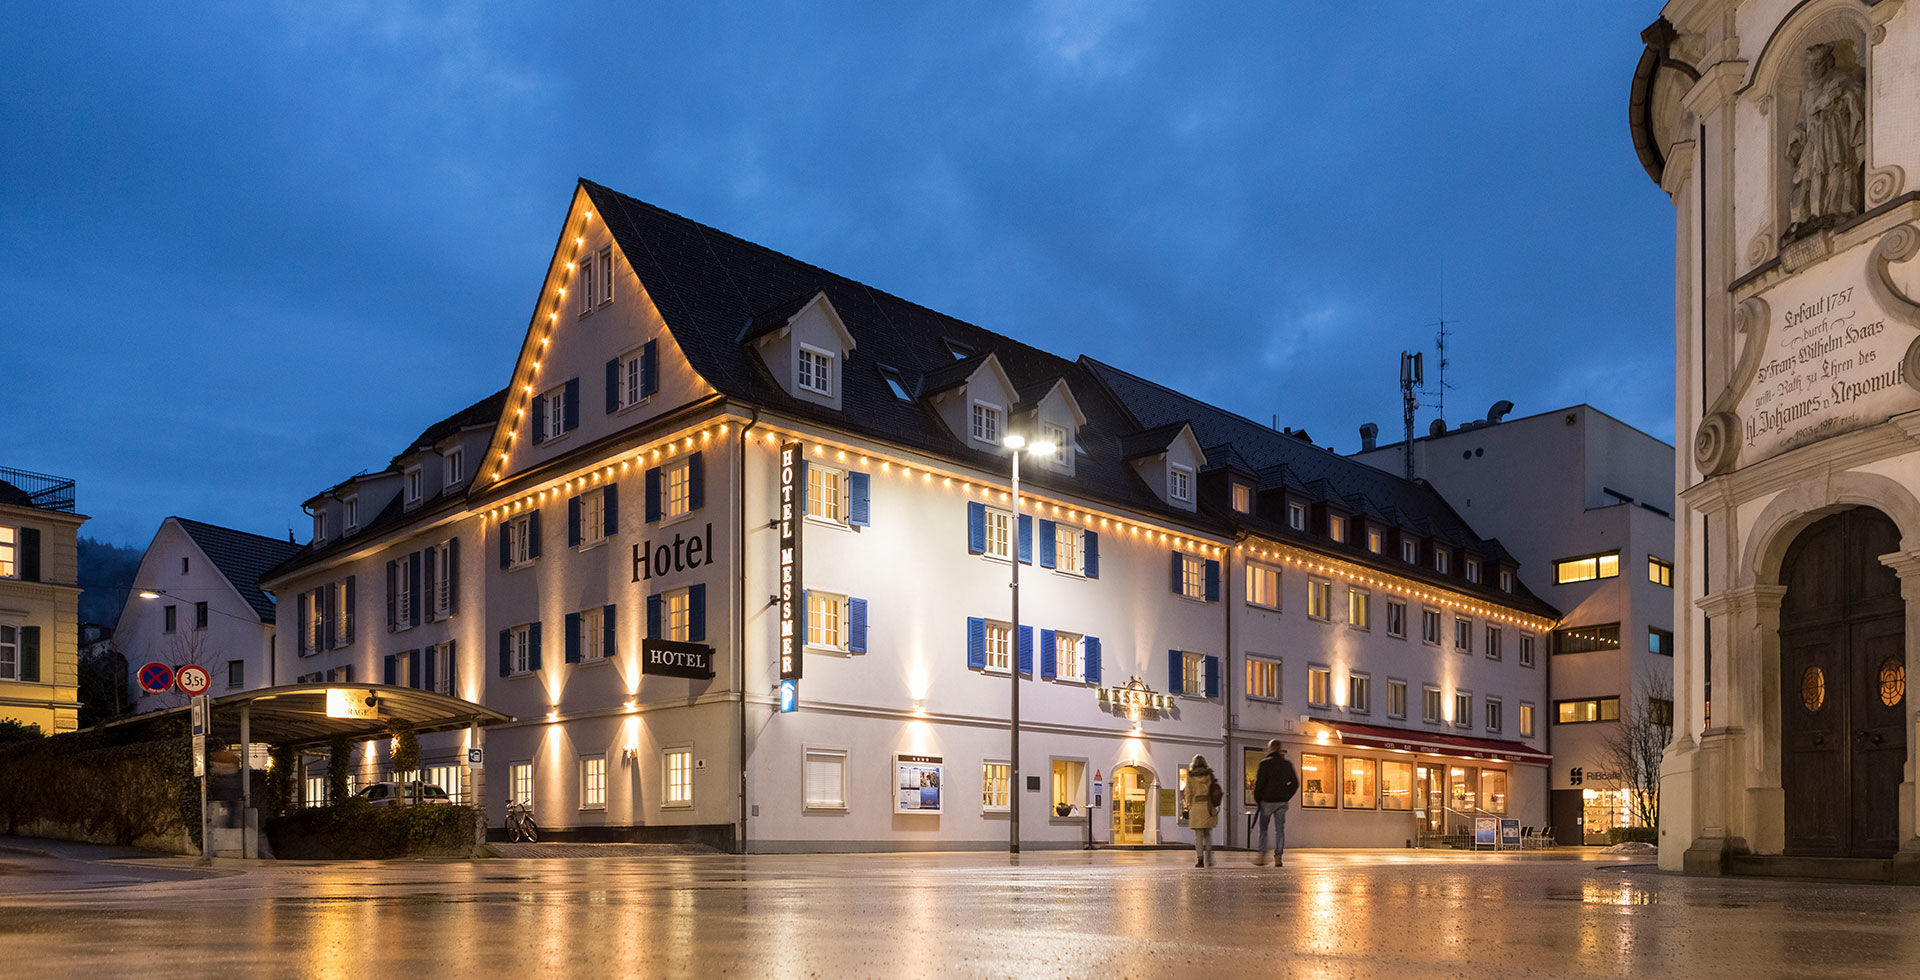 Hotel Messmer in Bregenz